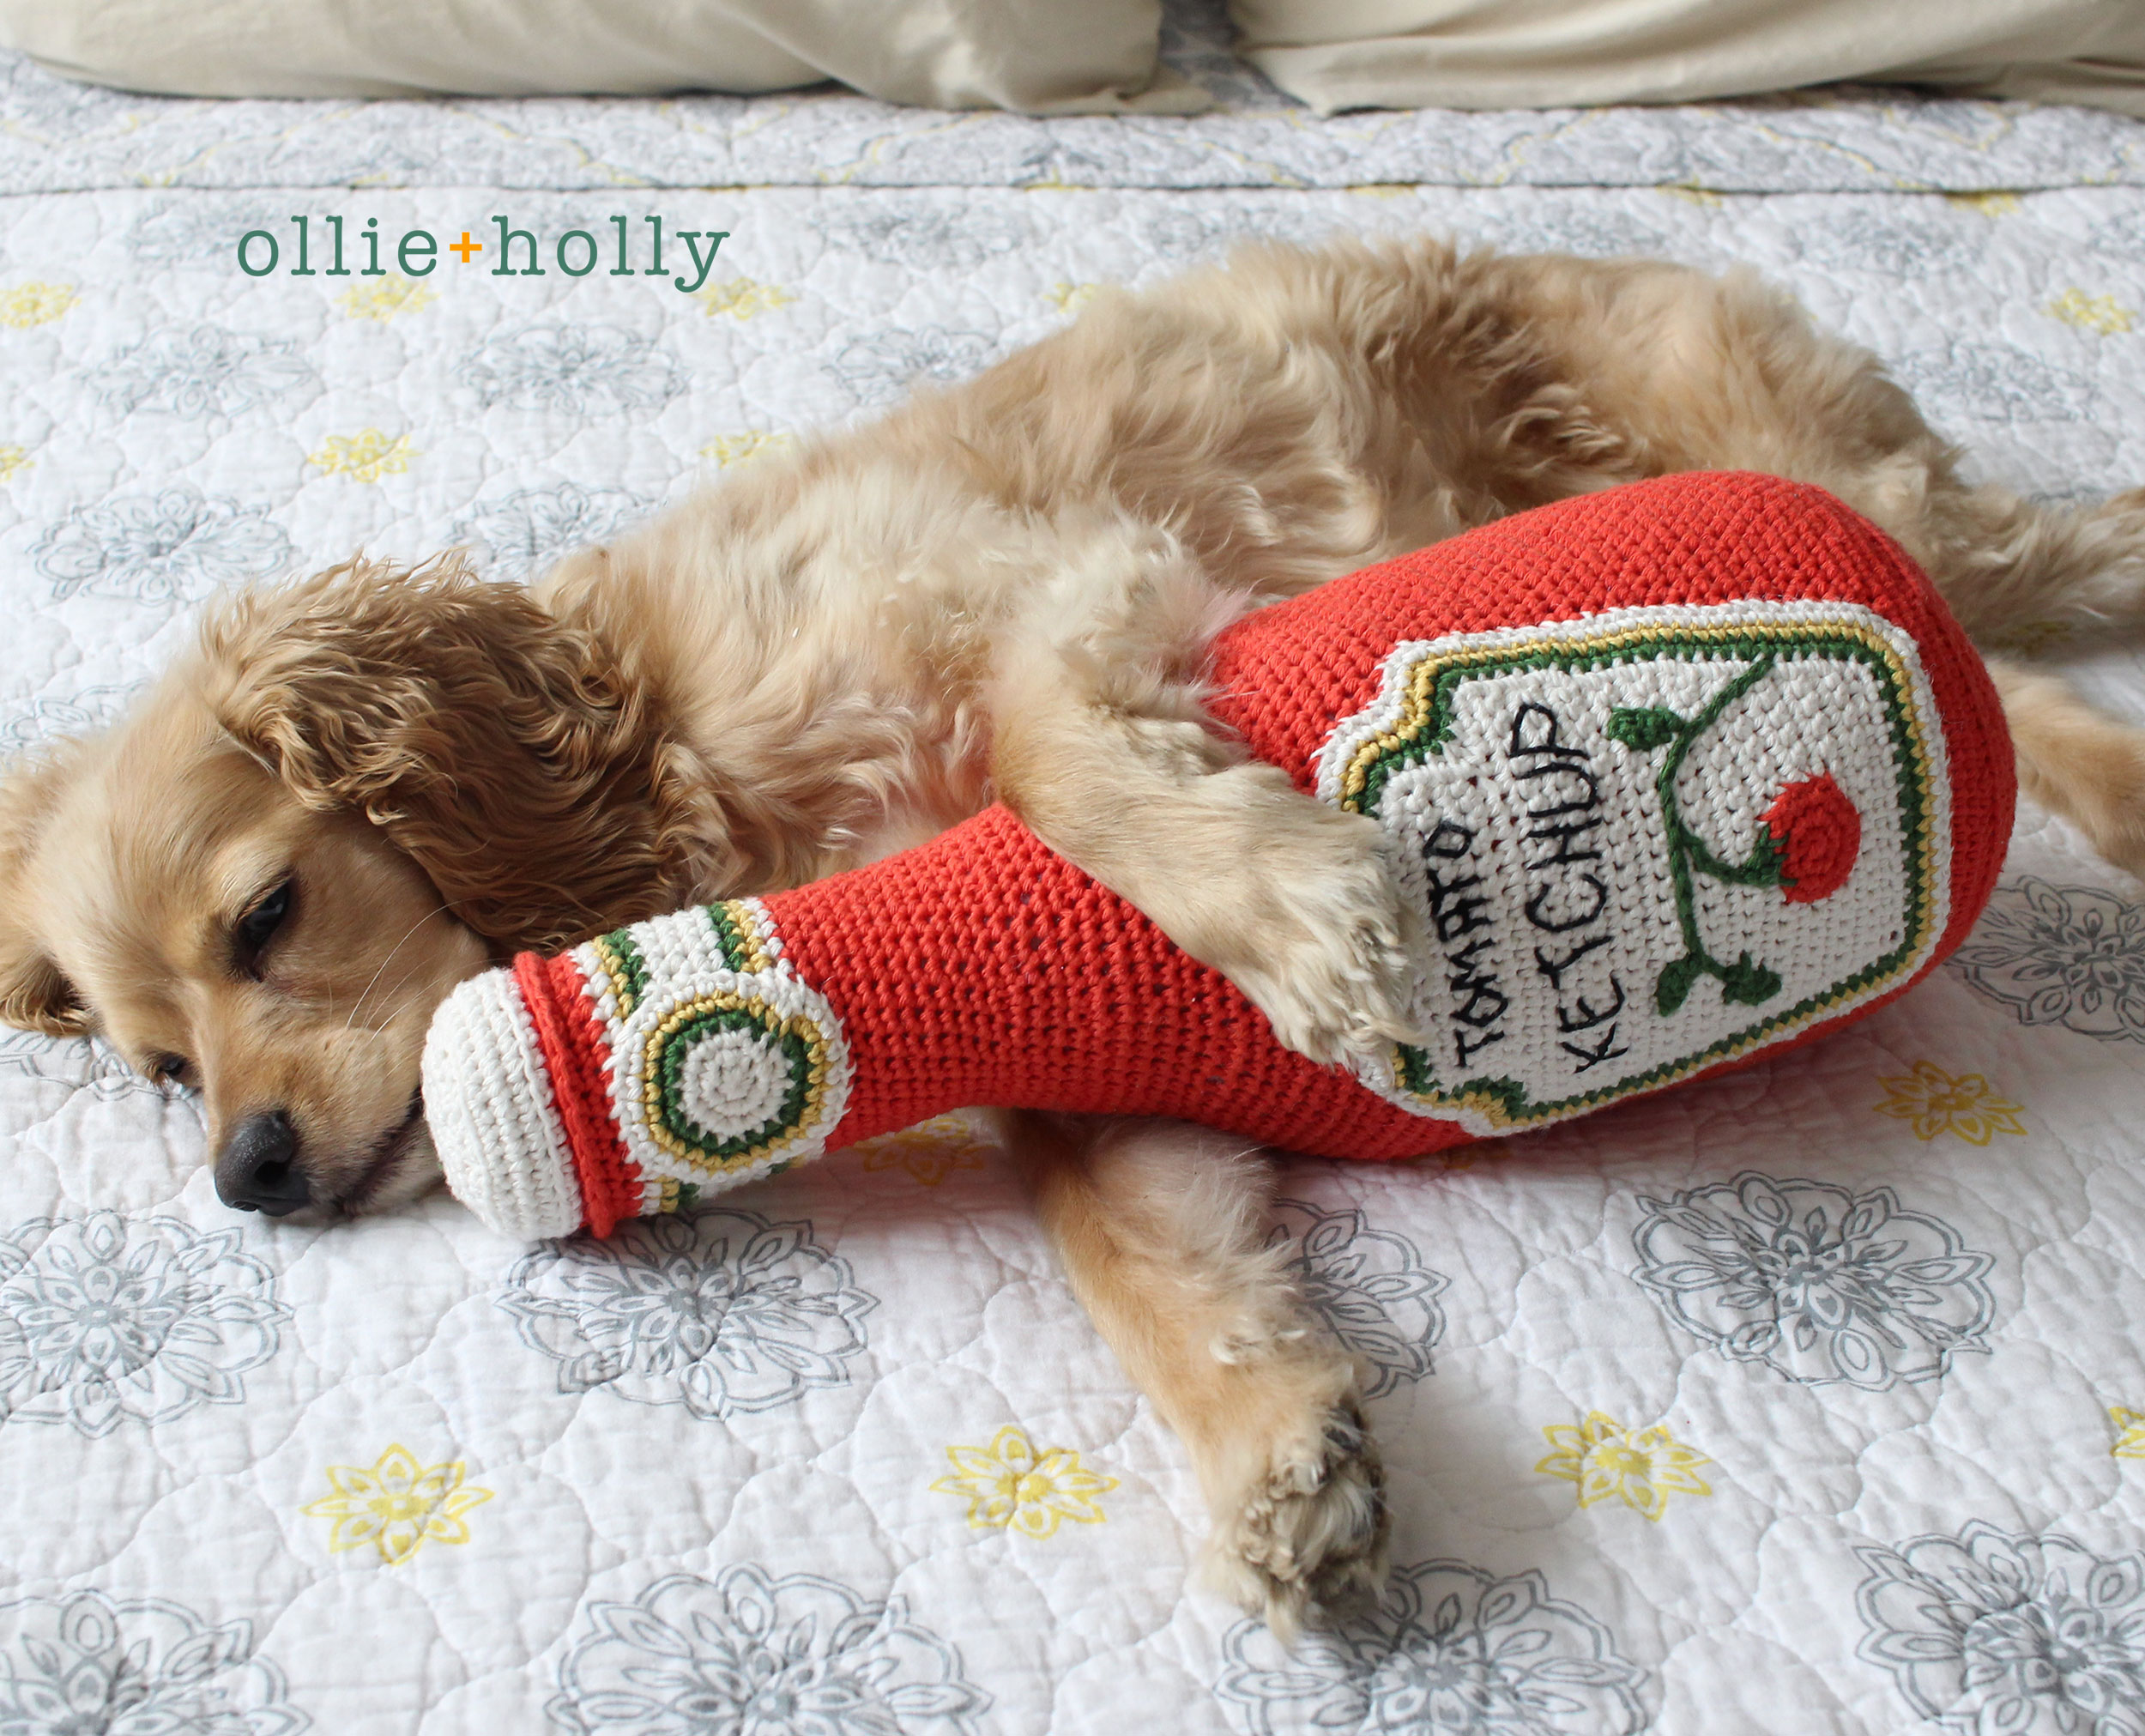 Free Ketchup Bottle Amigurumi Crochet Pattern with Ollie